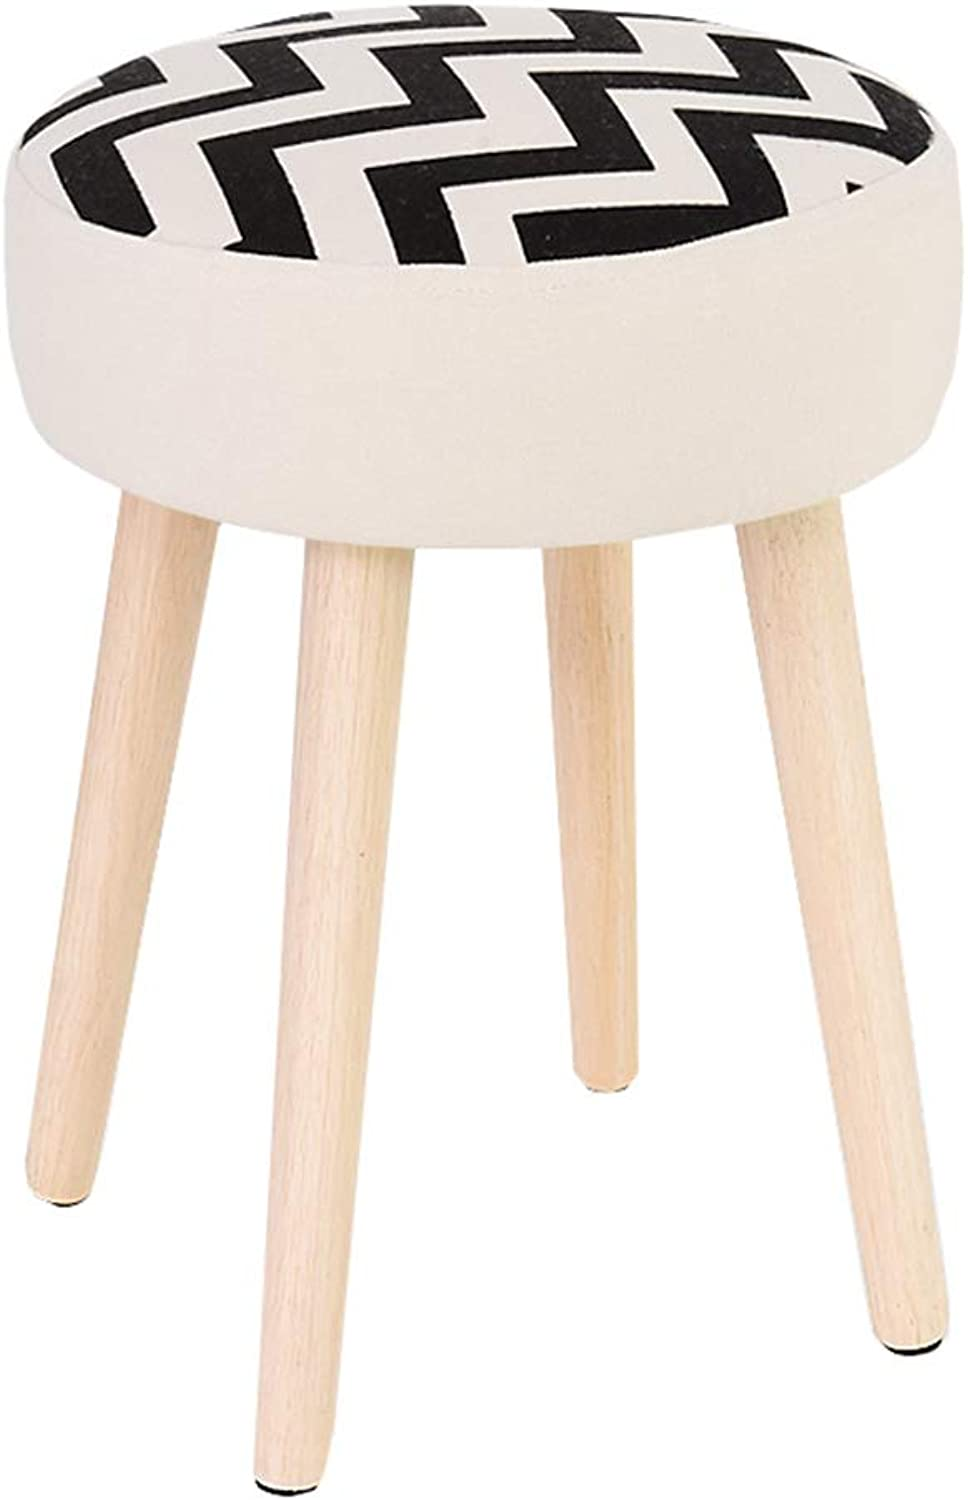 Home Change shoes Stool Cartoon Pattern Solid Wood Stool shoes shoes Fabric Sofa Stool Nordic Simple Art Creative (Pattern    3)